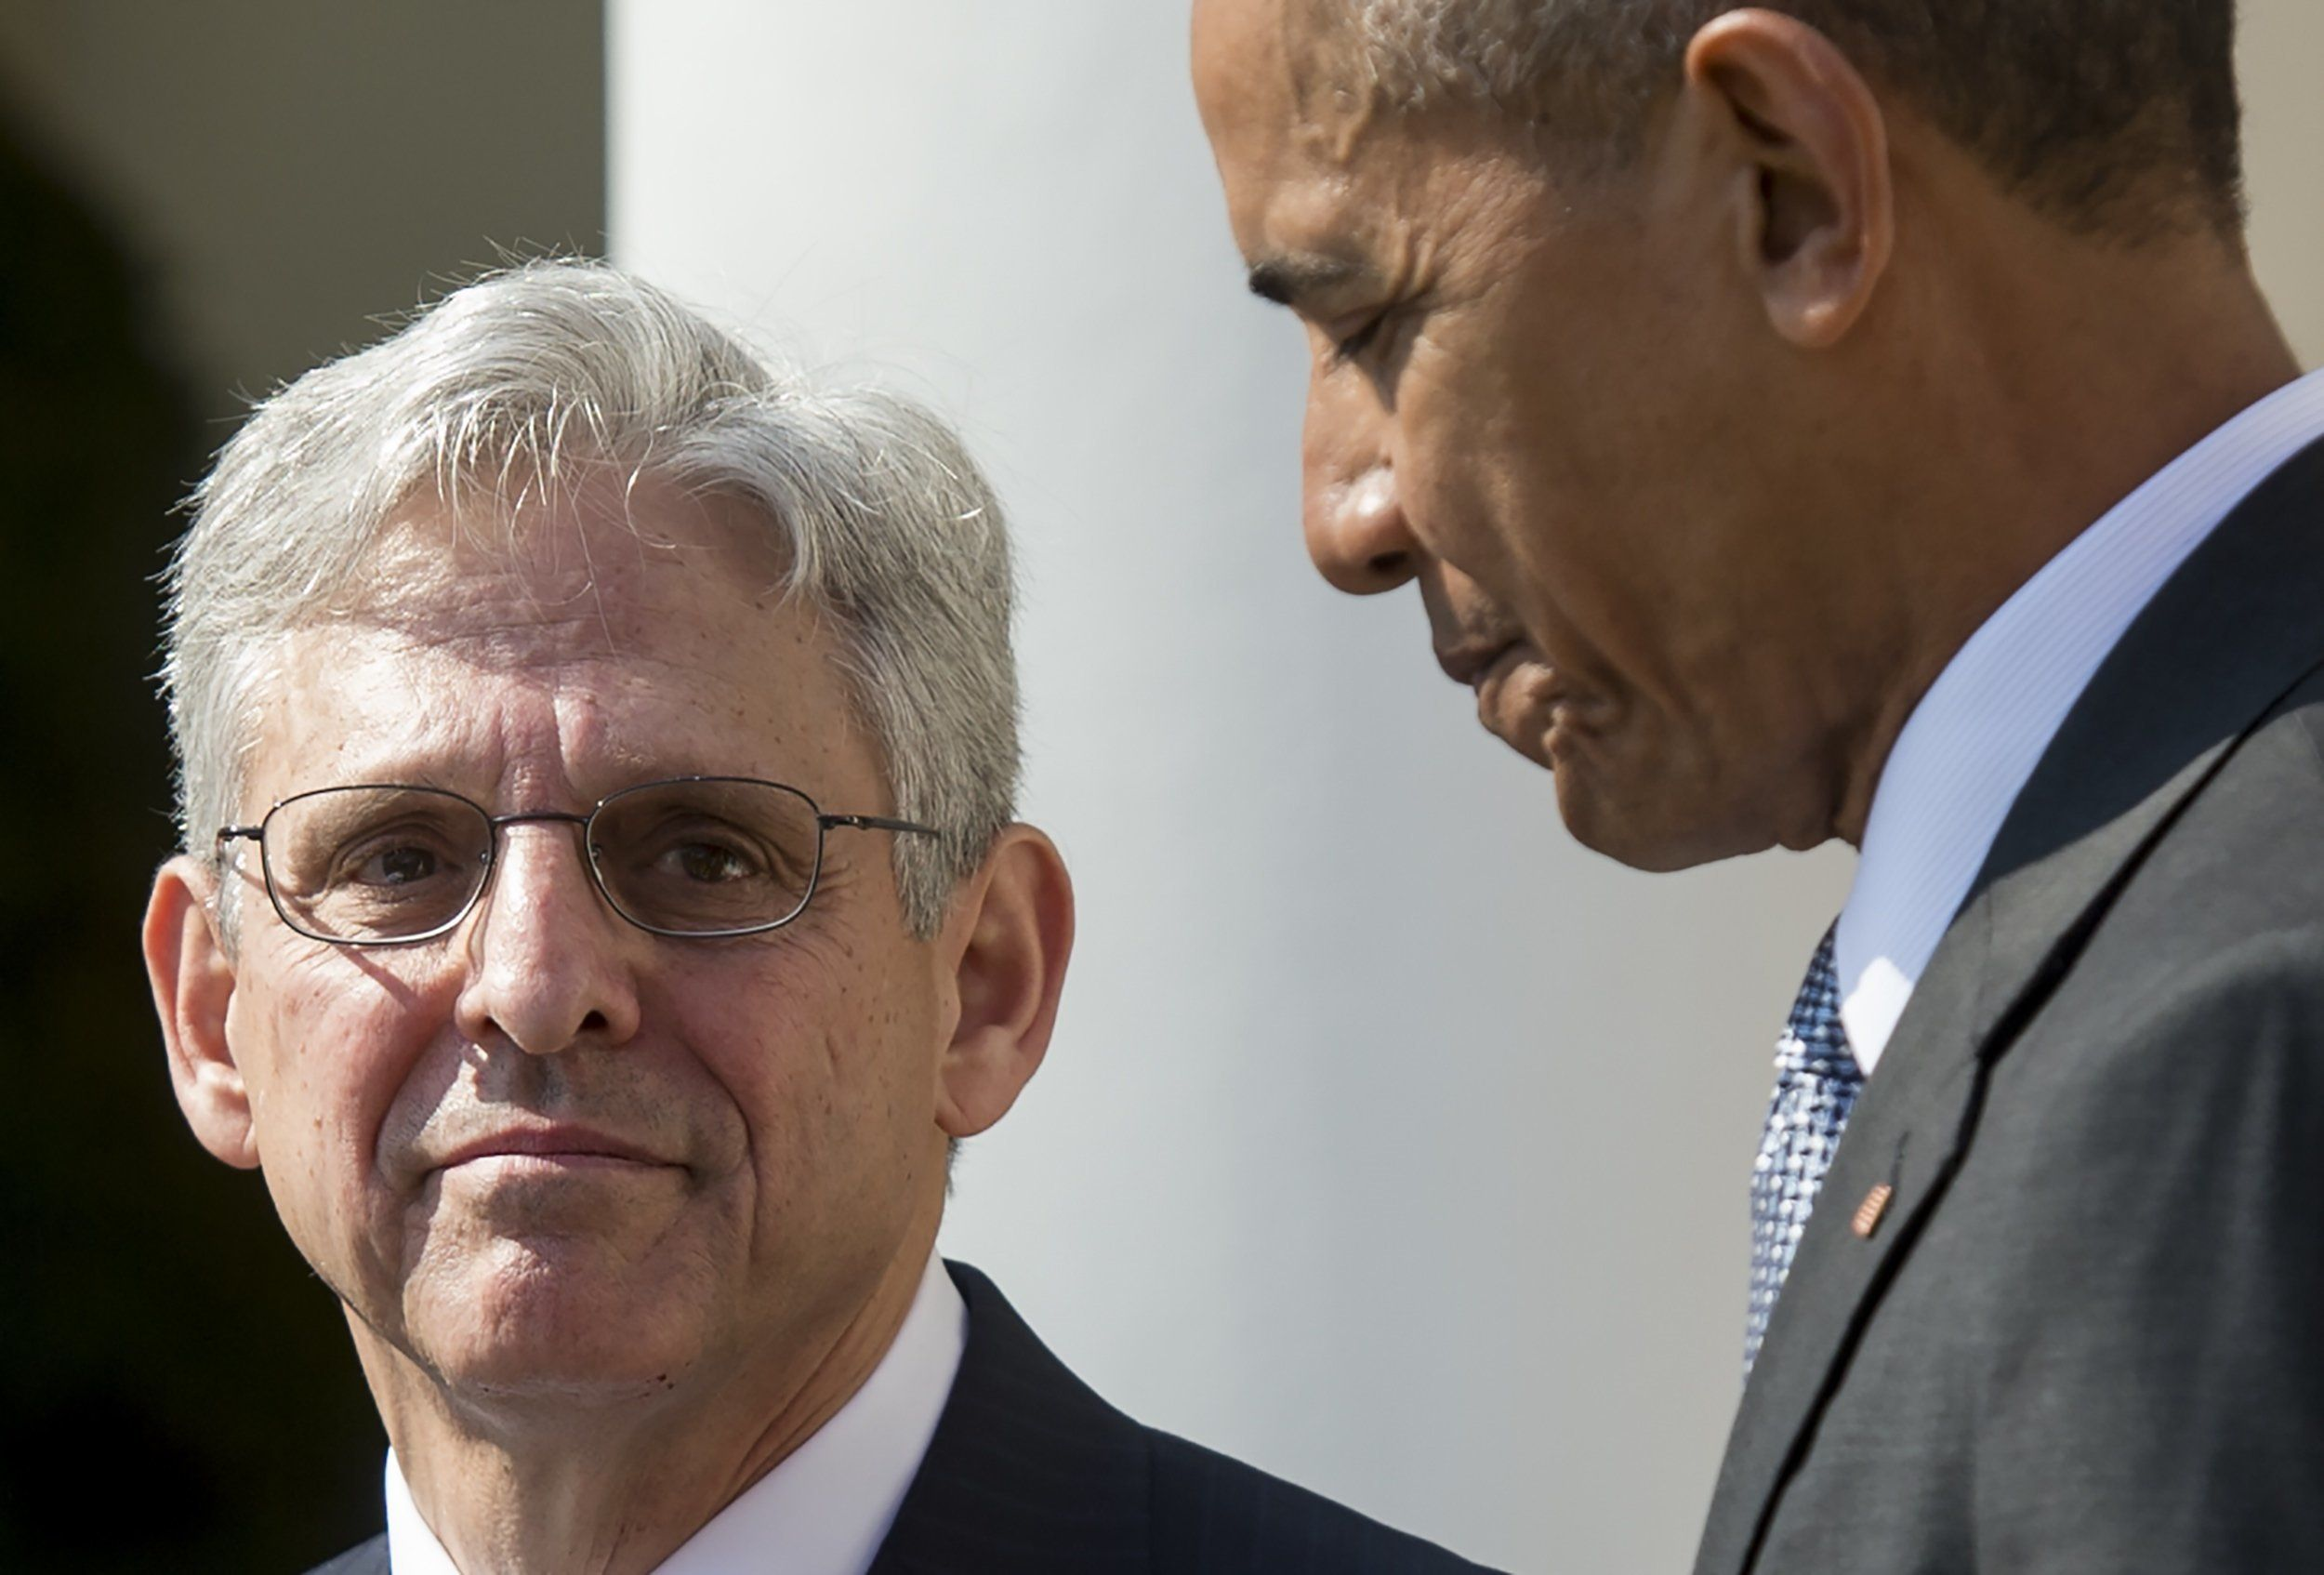 Merrick Garland was blocked by Republicans from taking a seat on the Supreme Court